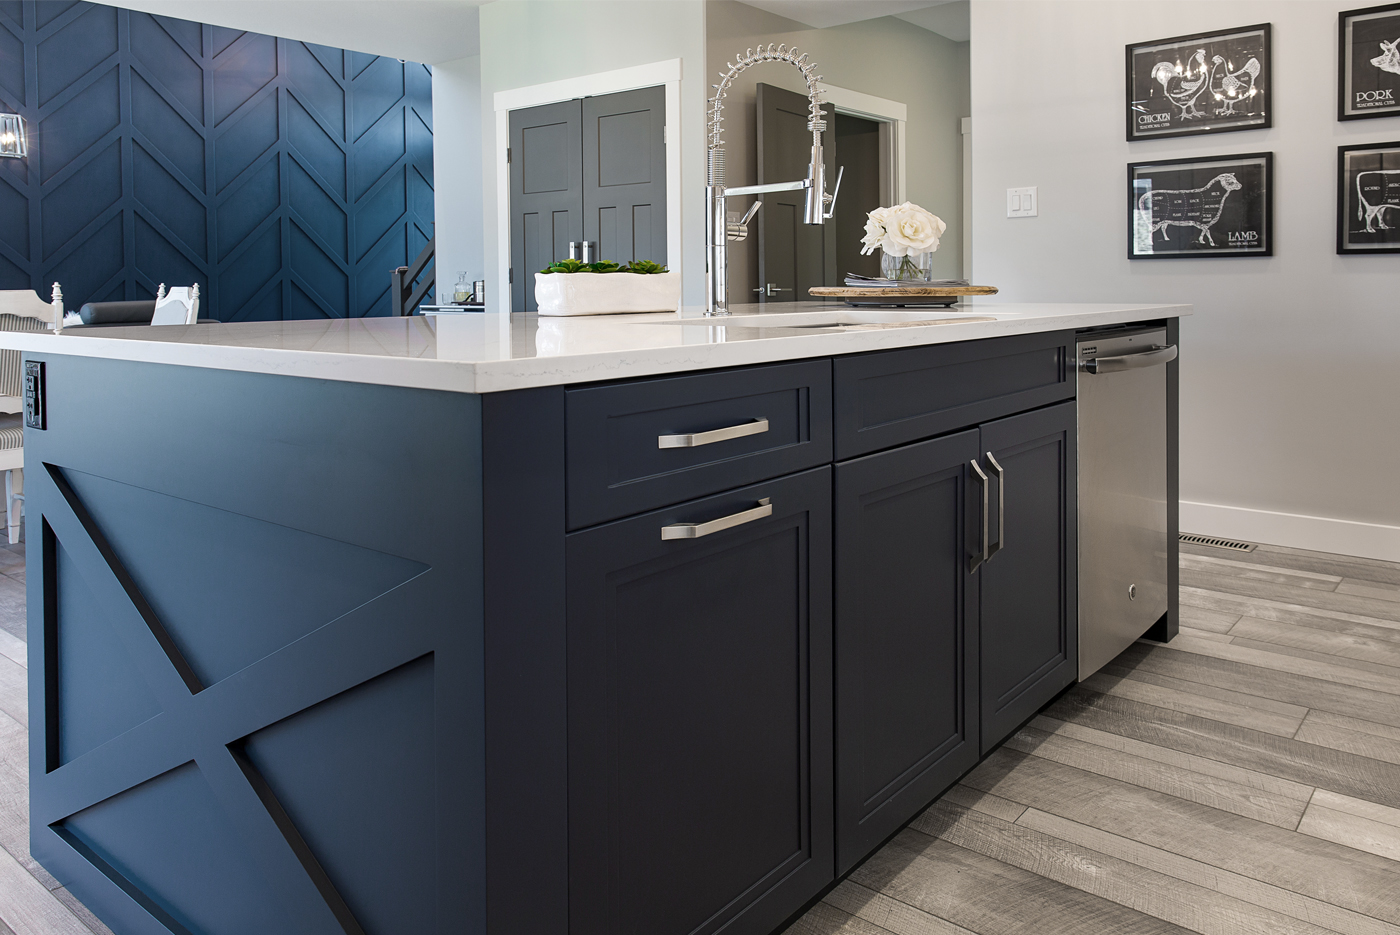 2018 kitchen trends | superior cabinets